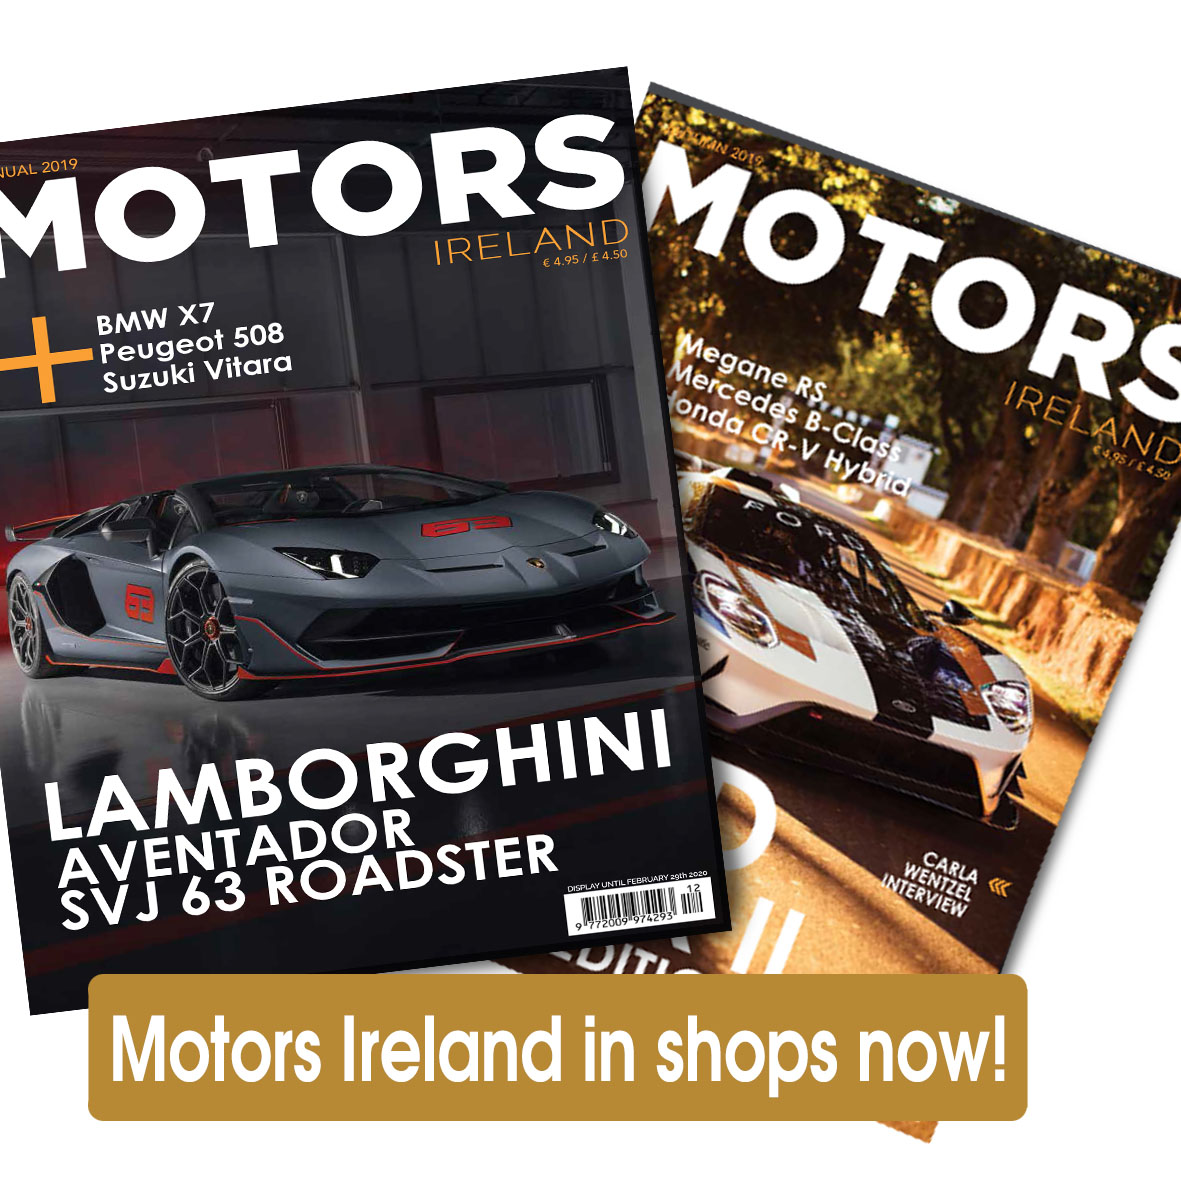 Motors Ireland in shops